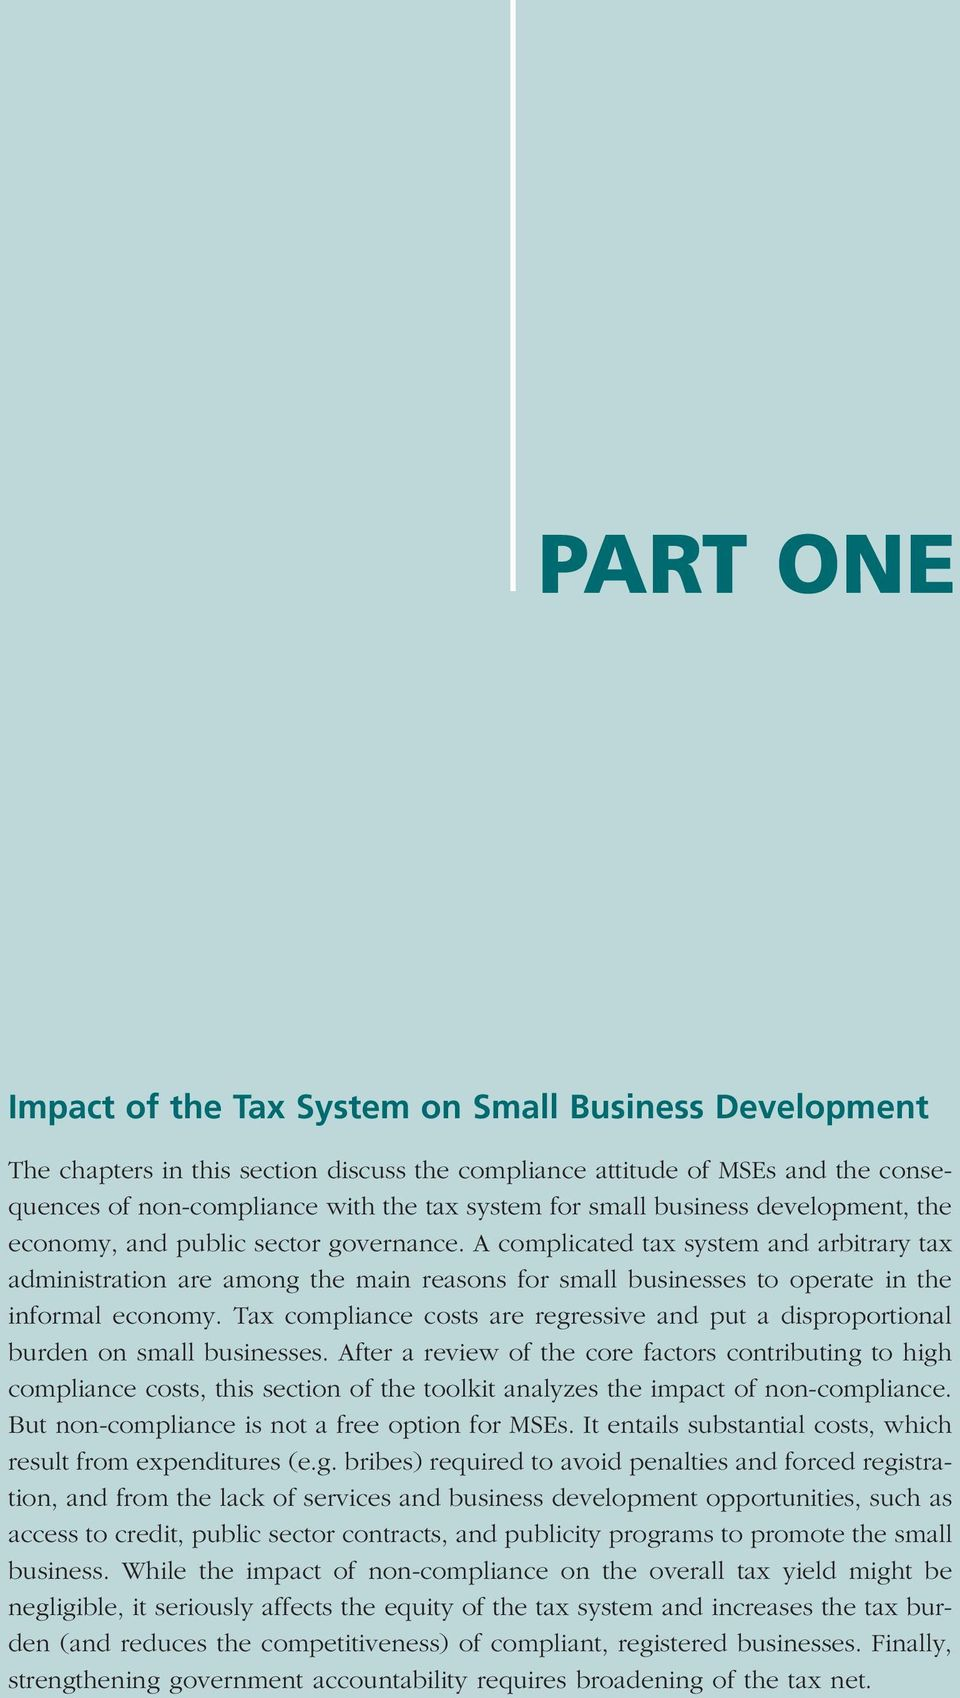 A complicated tax system and arbitrary tax administration are among the main reasons for small businesses to operate in the informal economy.